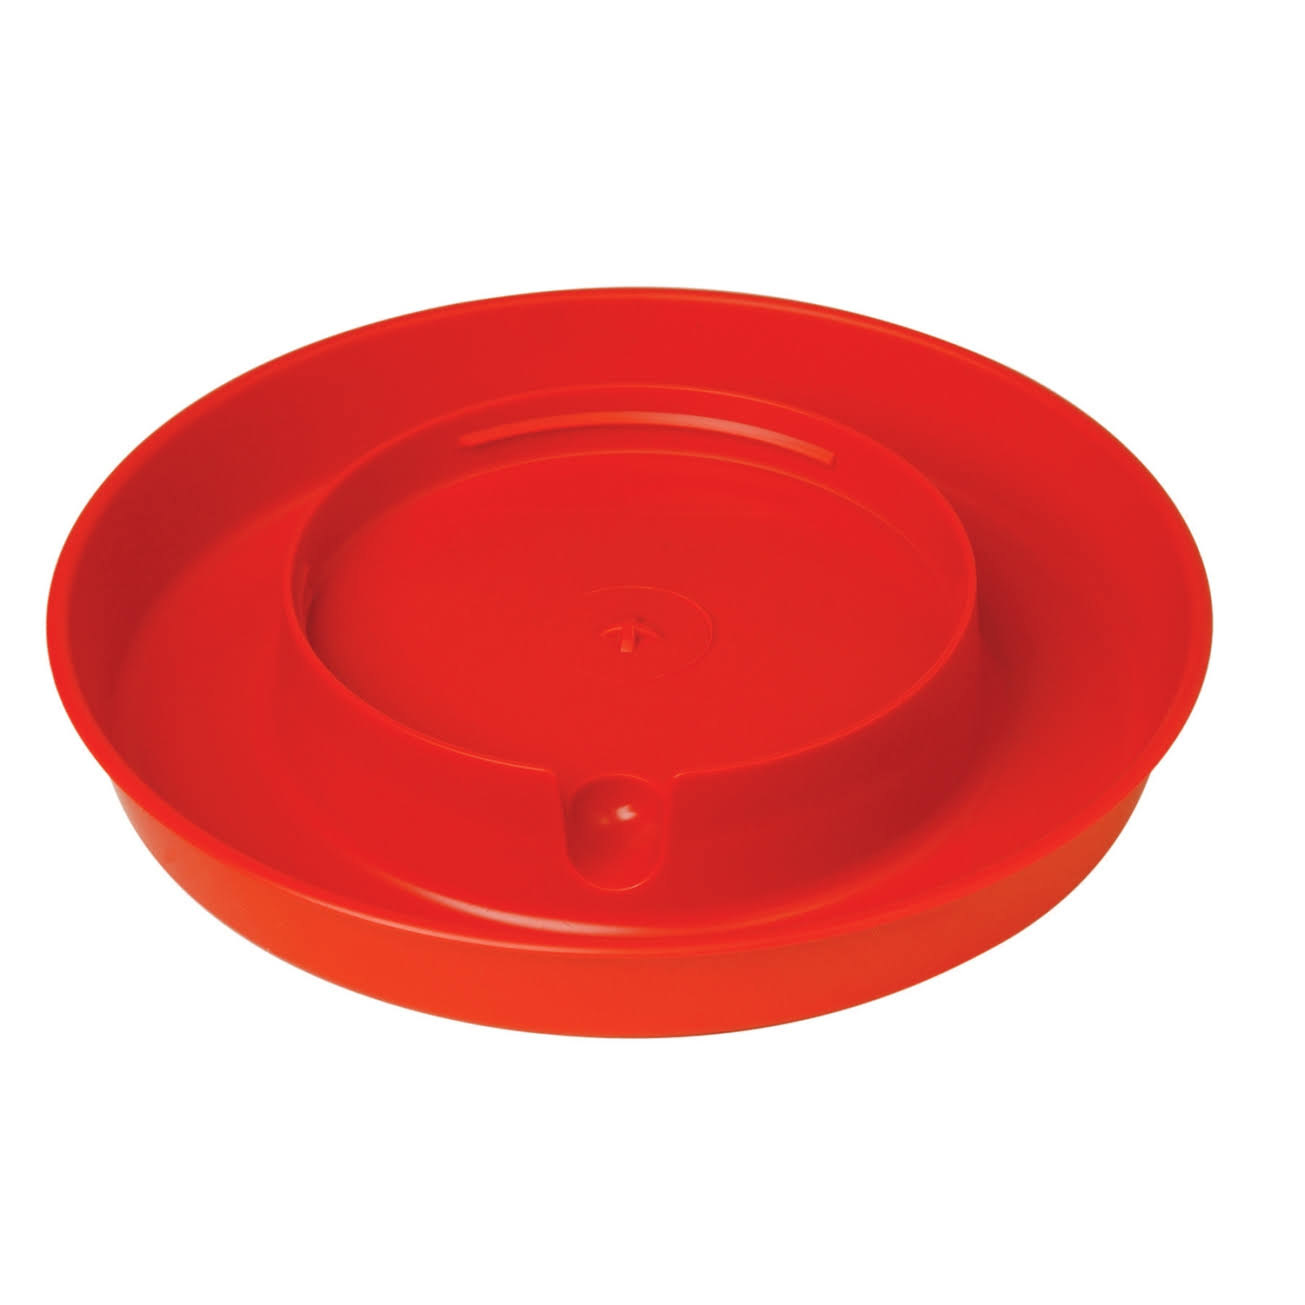 Miller Screw on Poultry Base Waterer - Red, 1 Gallon